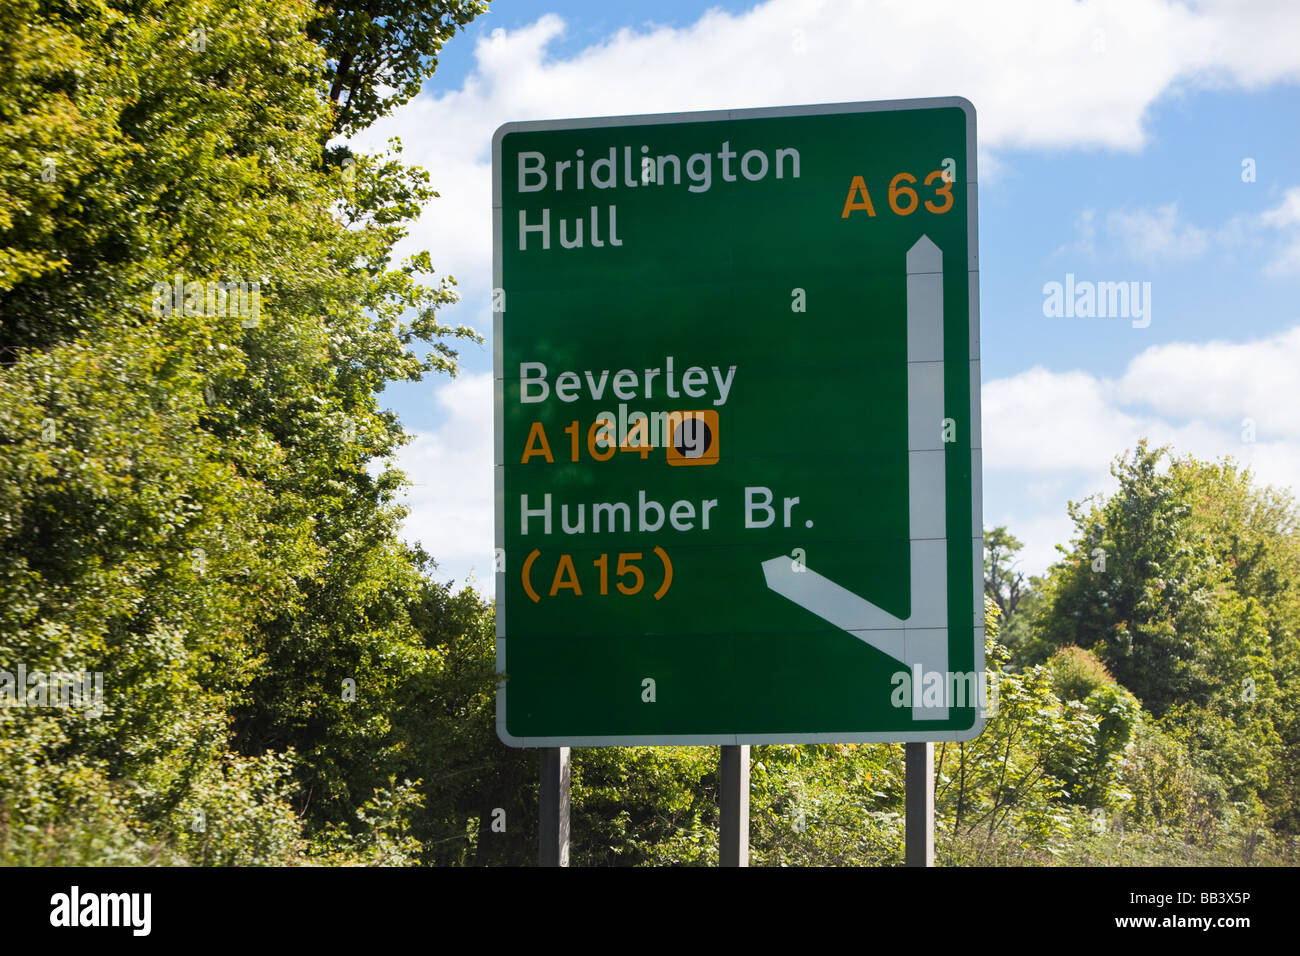 A road primary route sign with junction information England UK - Stock Image